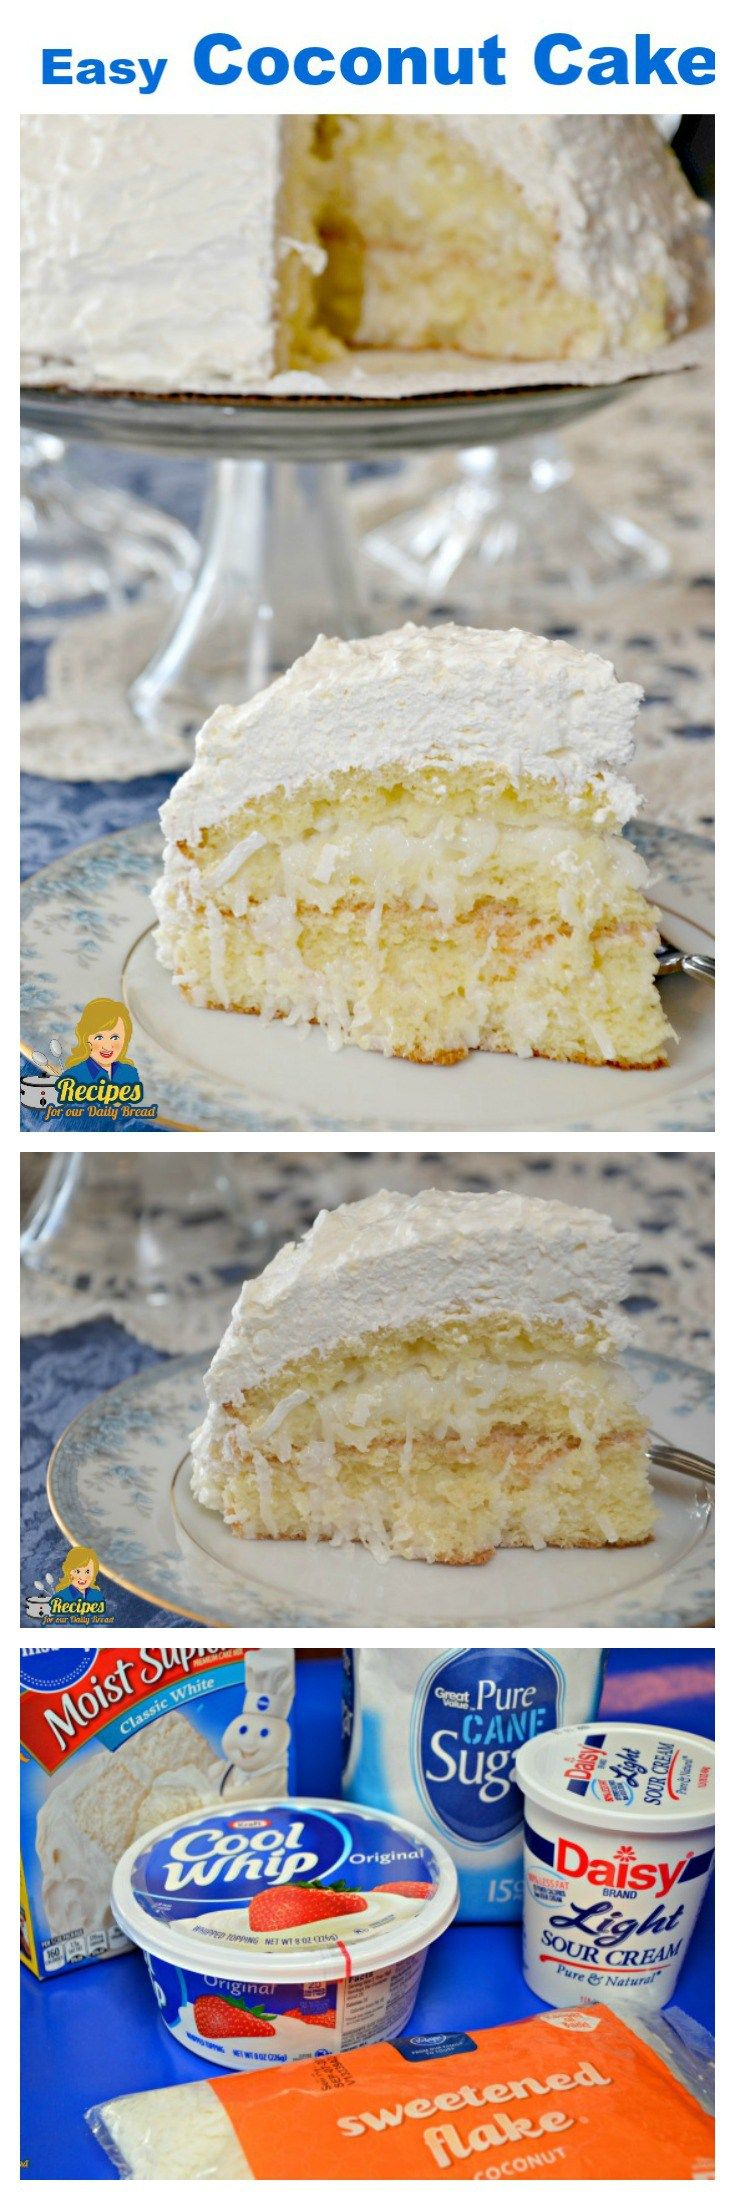 Easy Coconut Cake with only 5 ingredients